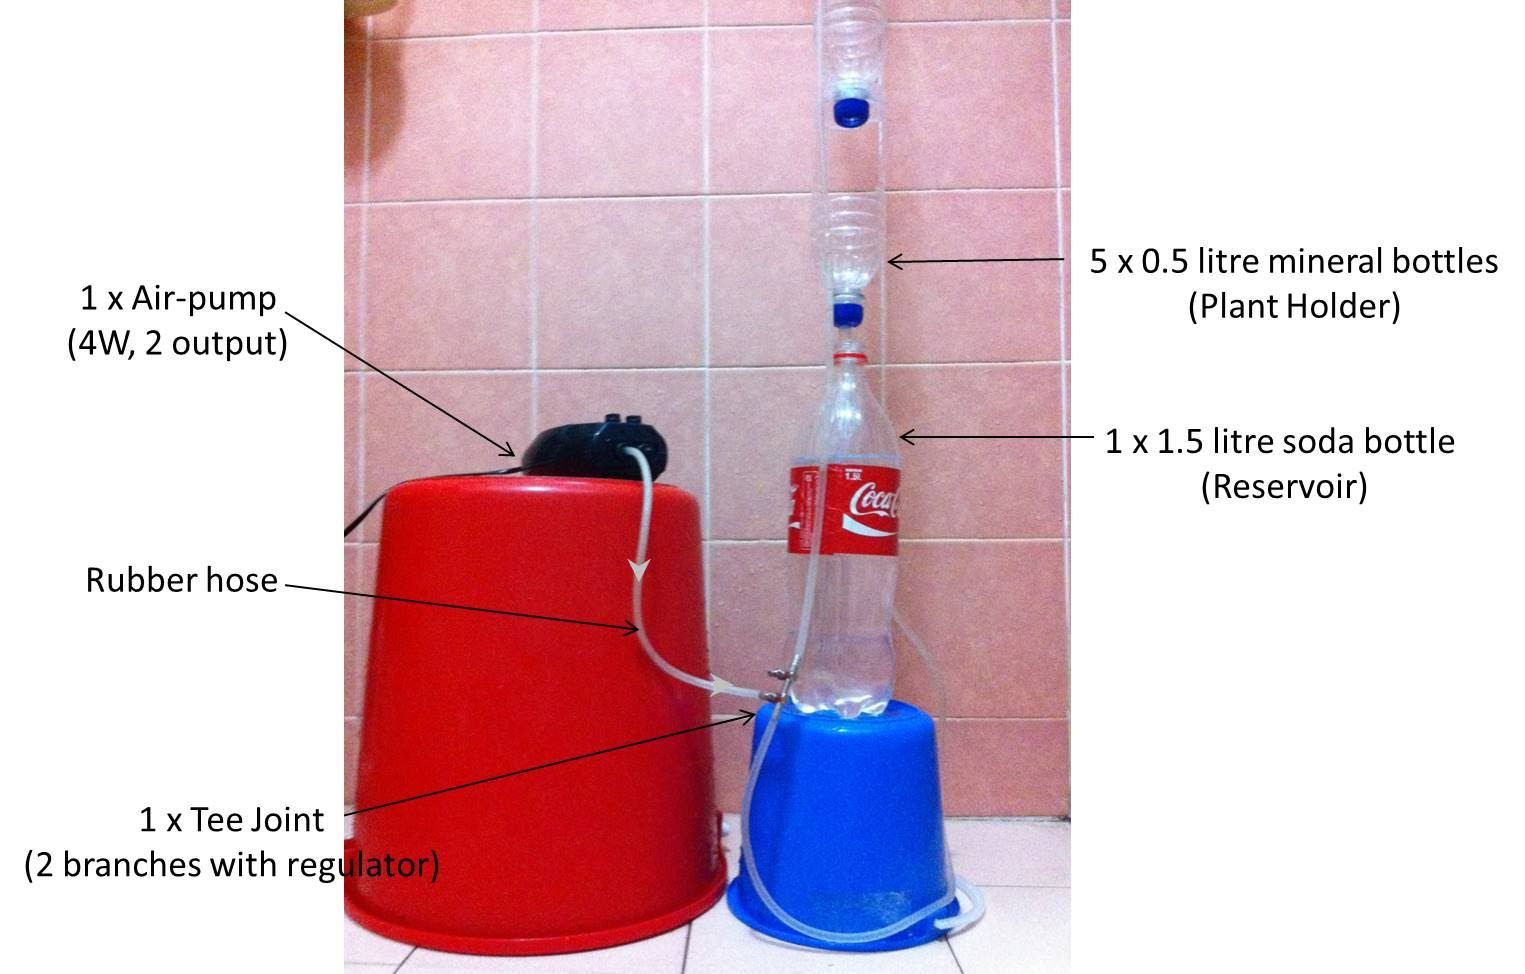 Pin by Lim San on Funz Experiment Bottle, Soda bottles